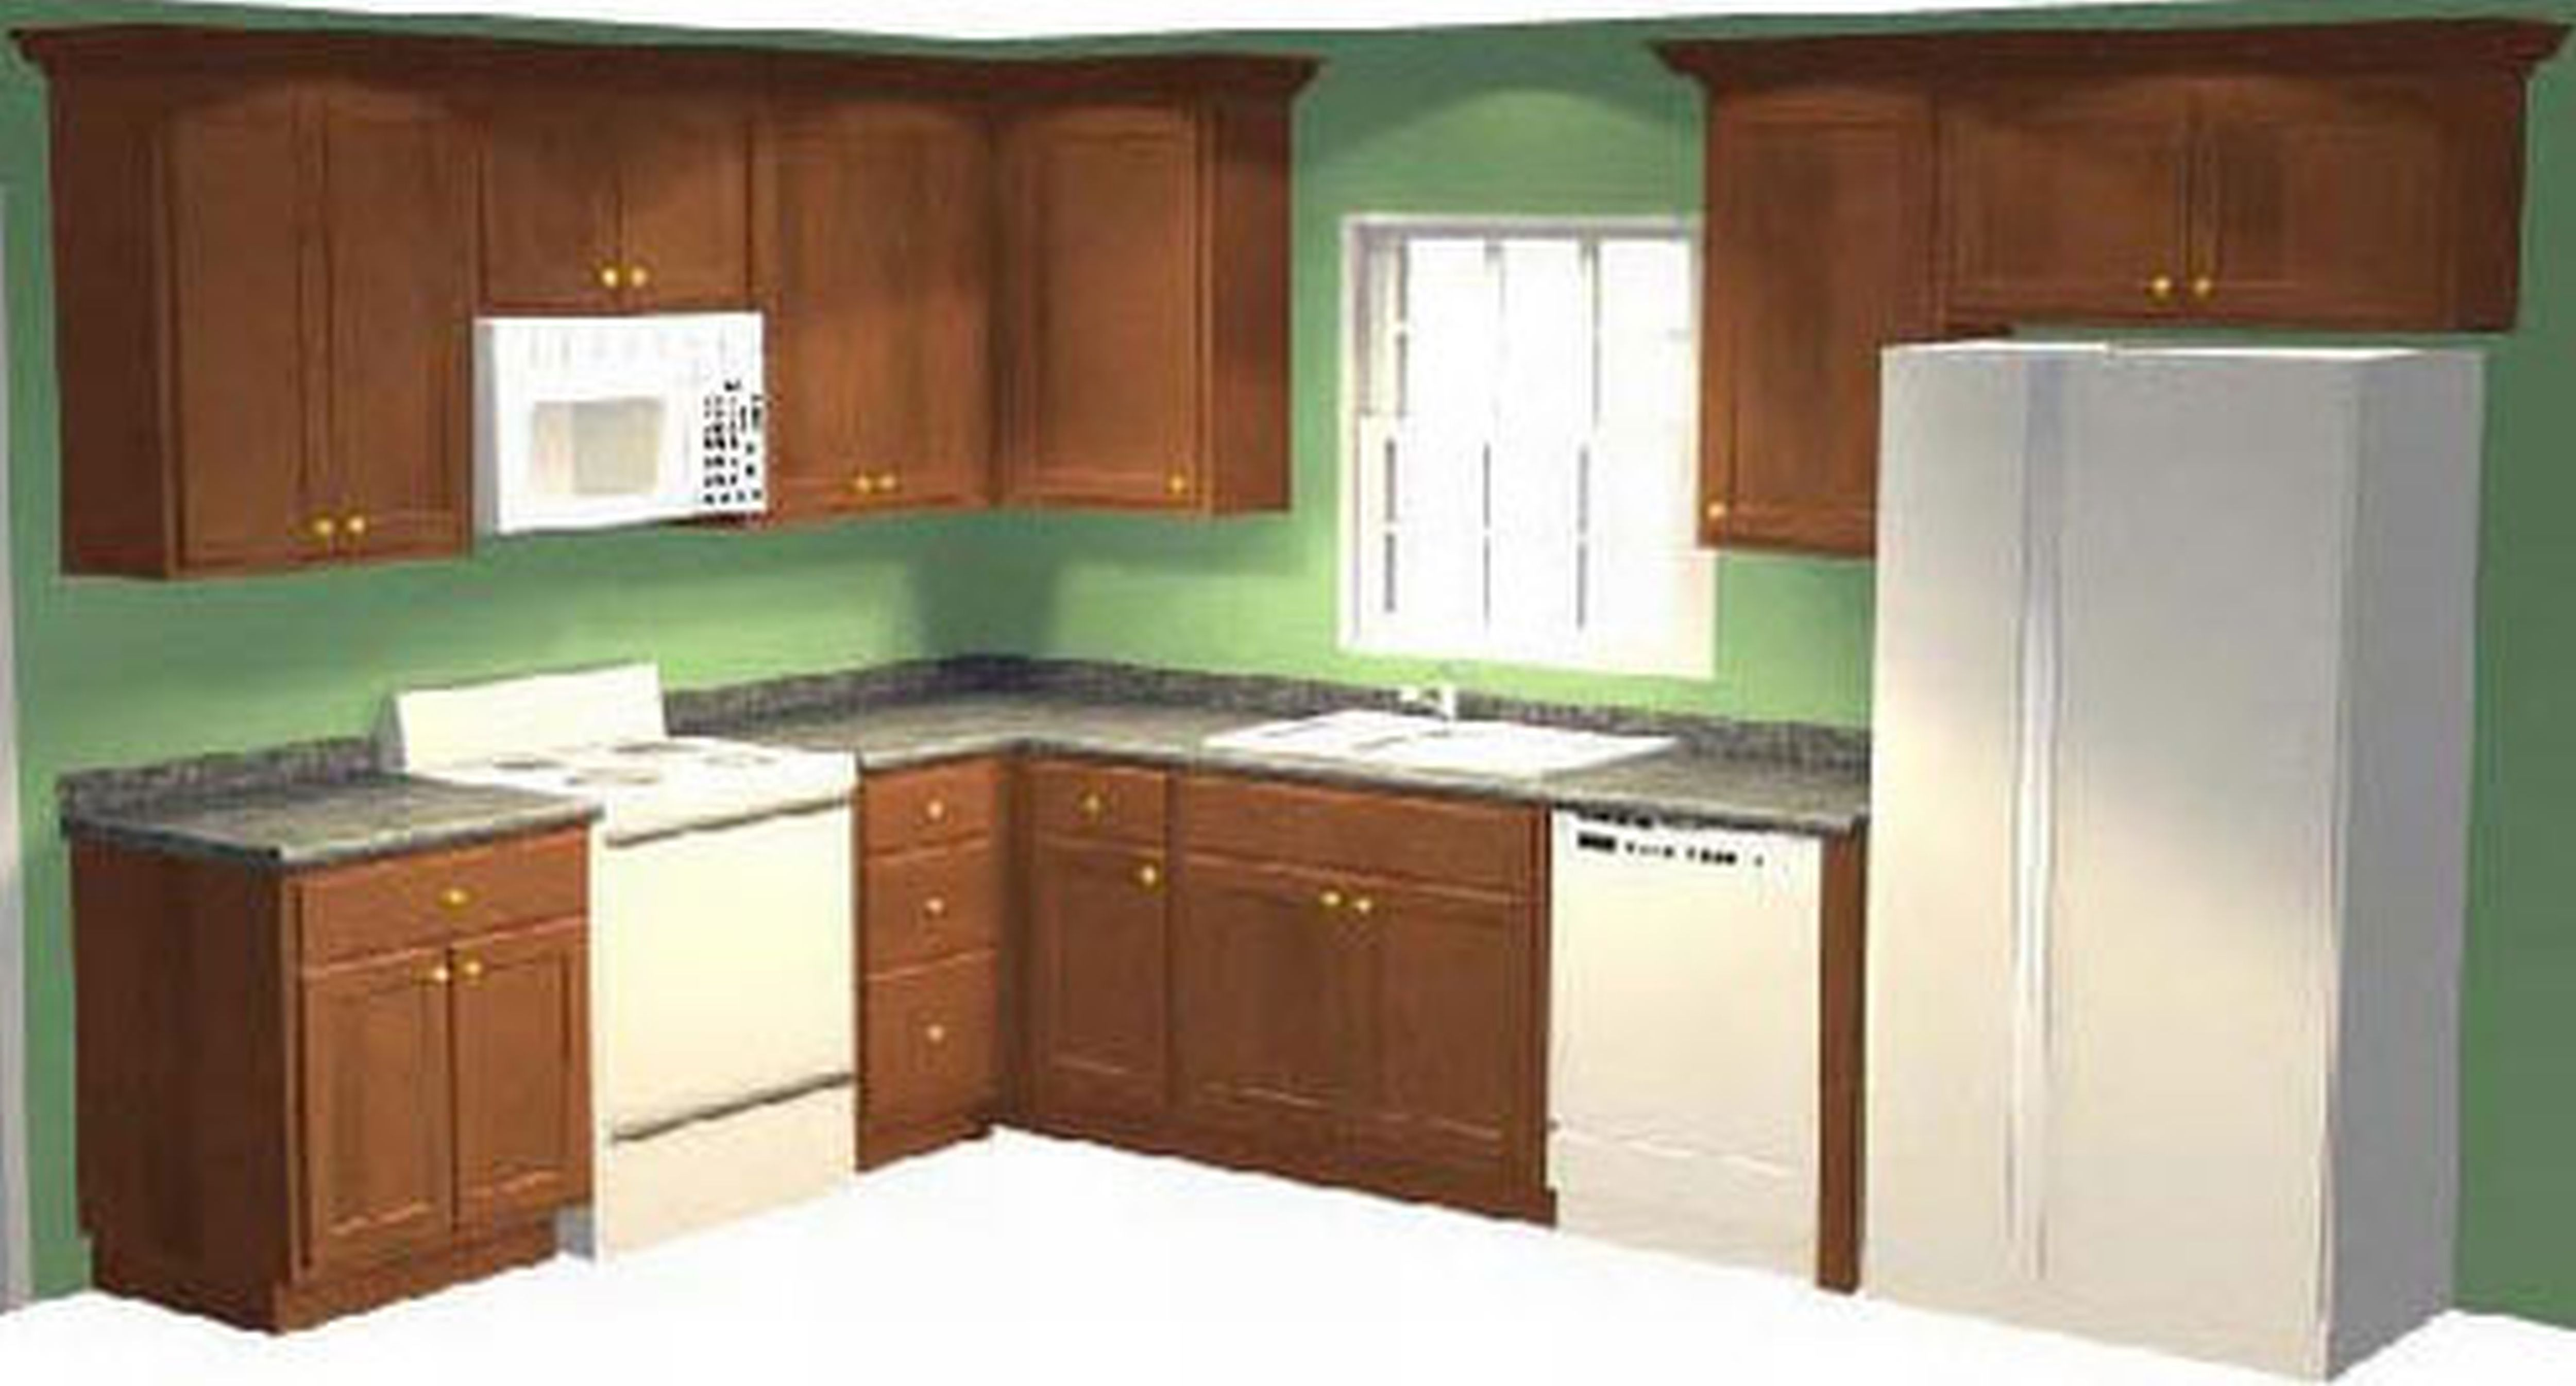 Image Result For Corner Drawer Cabinet Kitchen  My Kitchen Awesome Design Your Own Kitchens Inspiration